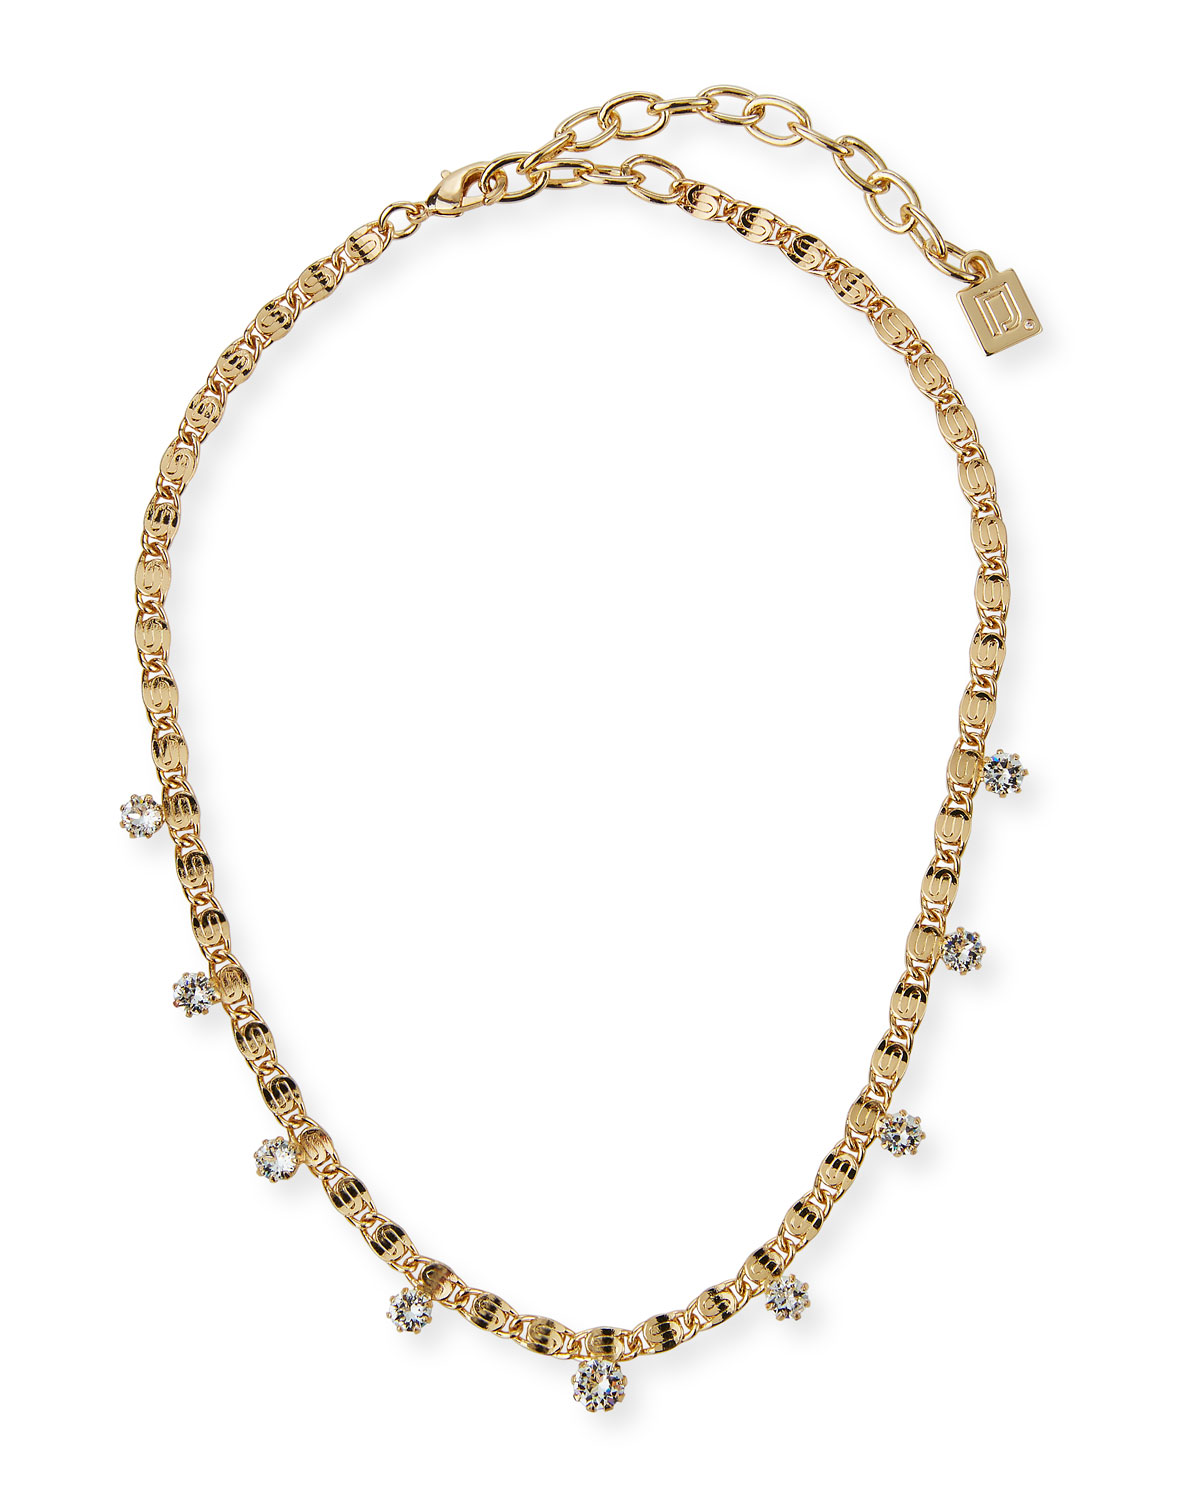 Audra Crystal Necklace